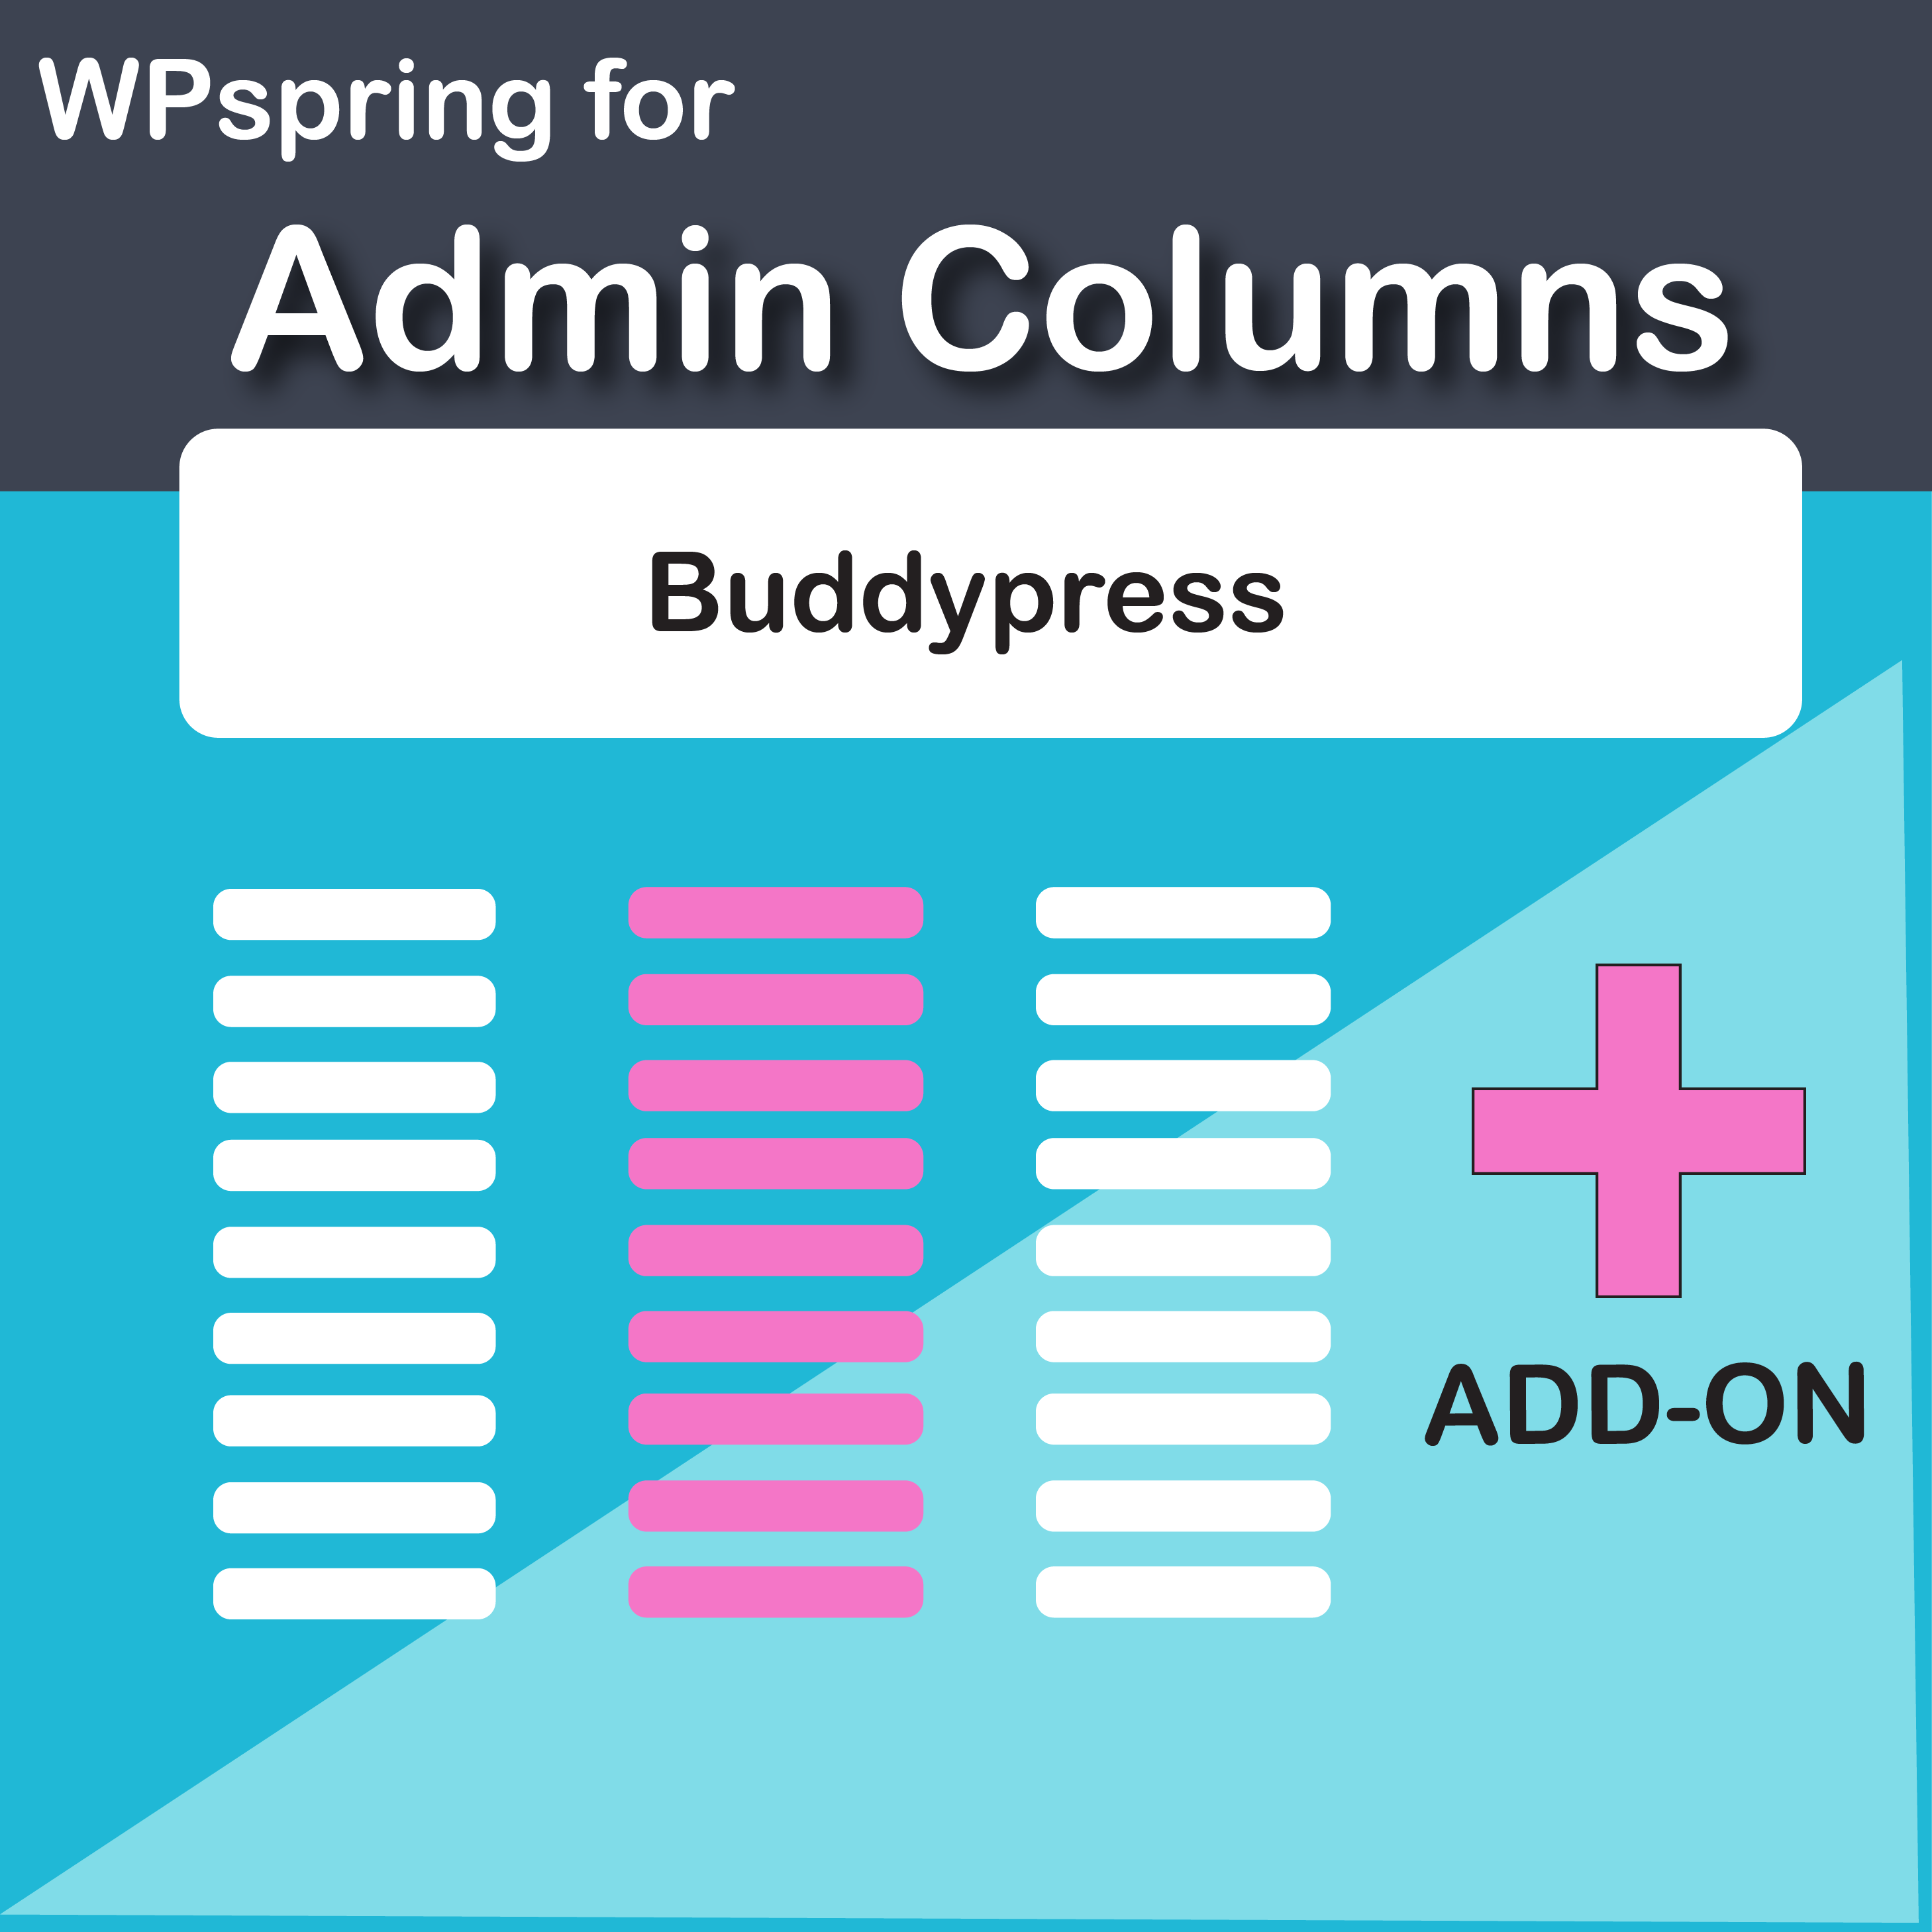 Admin Columns Pro Buddypress Integration Add-On